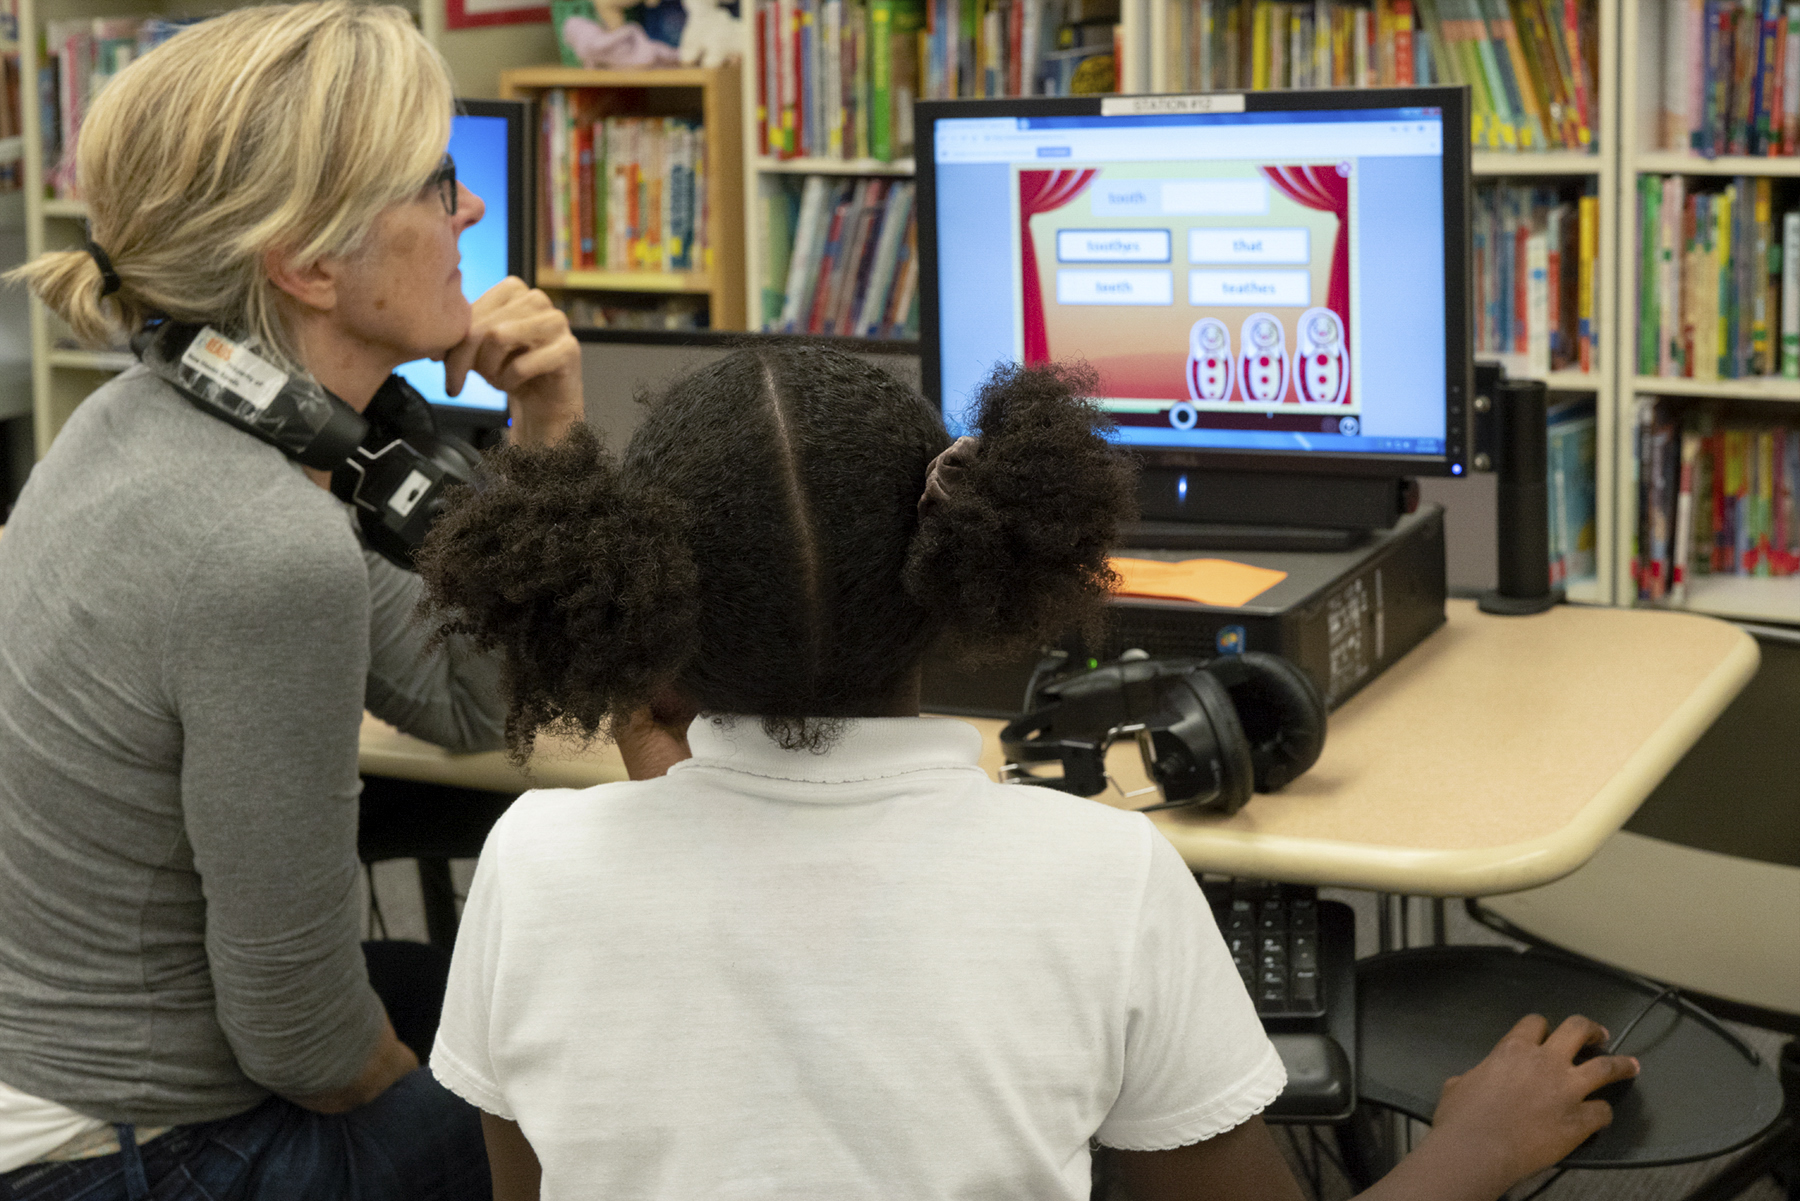 NHR student works on a computer-based literacy program as her tutor looks on.